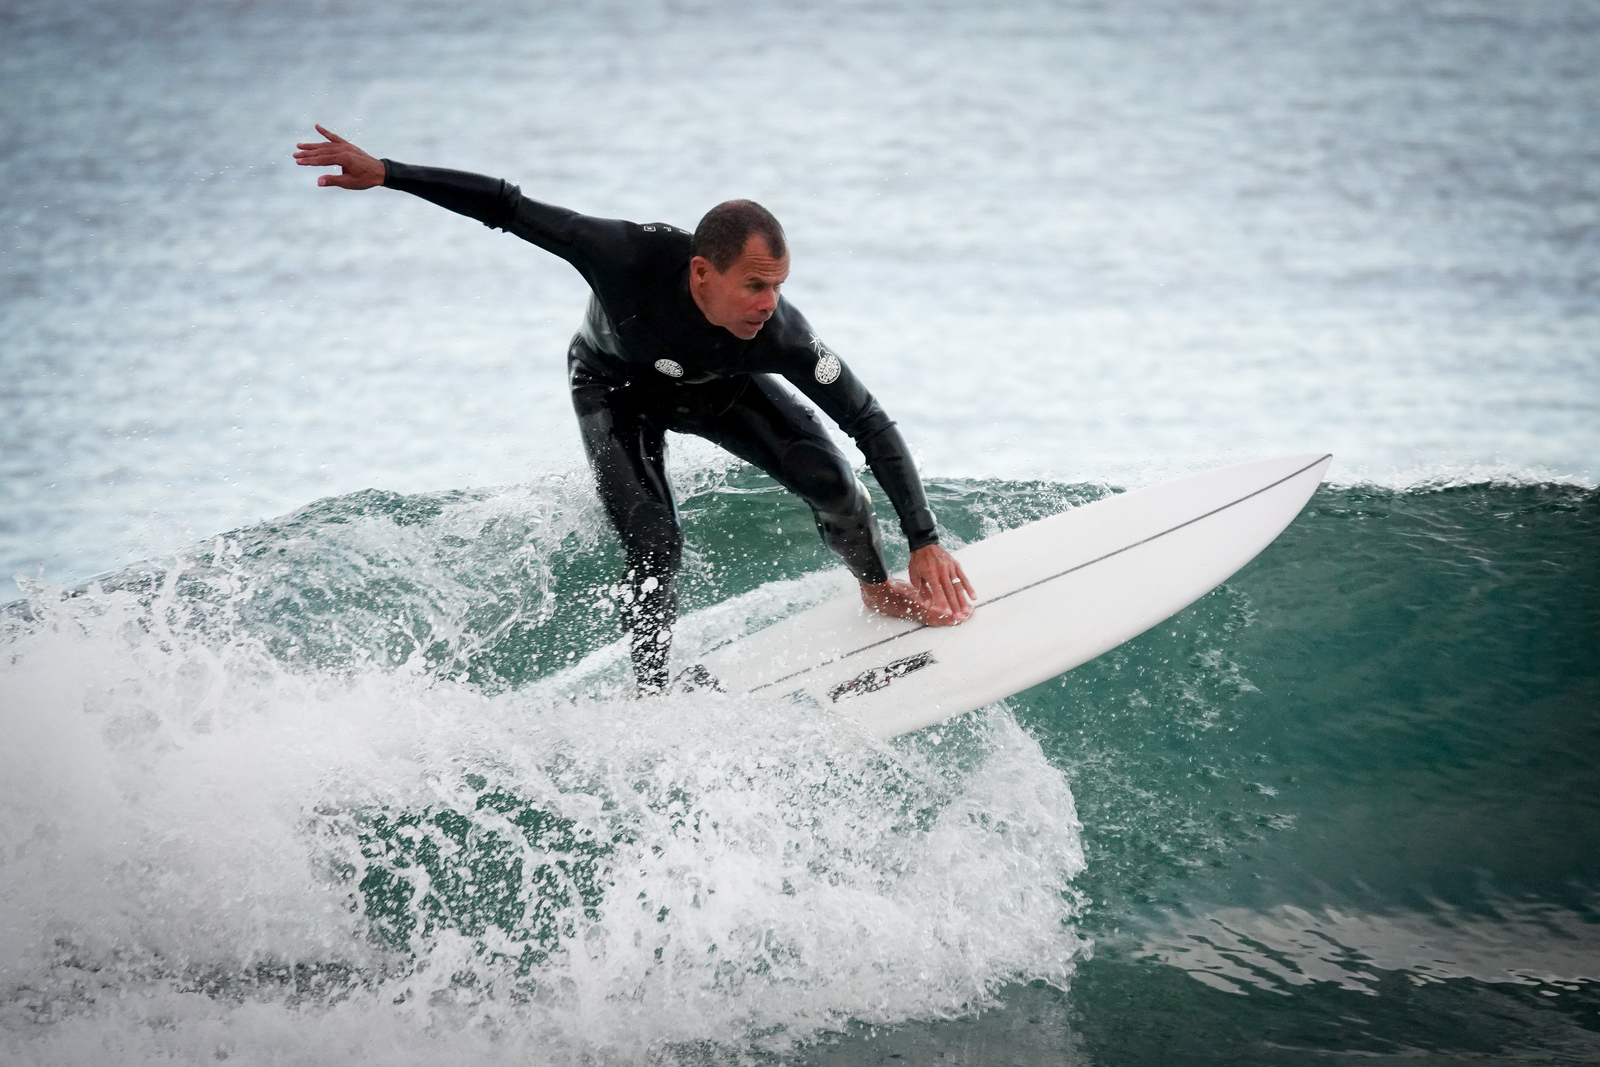 Surfer caught in action on Sony RX10IV